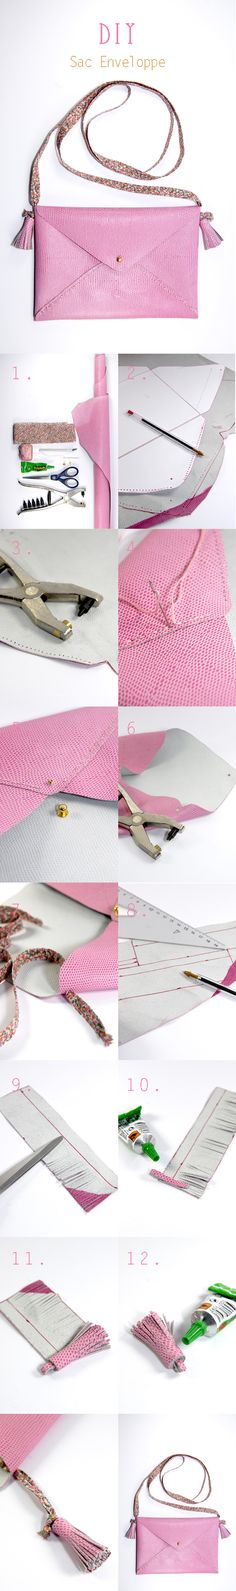 Tuto comment faire un sac enveloppe en cuir 2019 DIY Envelope Clutch FREE Pattern and Tutorial The post Tuto comment faire un sac enveloppe en cuir 2019 appeared first on Bag Diy. Diy Clutch, Diy Purse, Clutch Purse, Envelope Clutch, Envelope Tutorial, Pochette Diy, Diy Sac, Diy Bags Purses, Tuto Sac